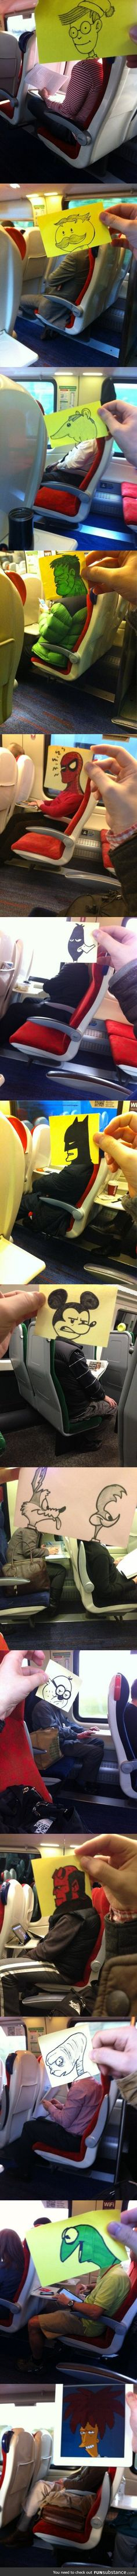 Commuting Doodles by October Jones. FUNNY